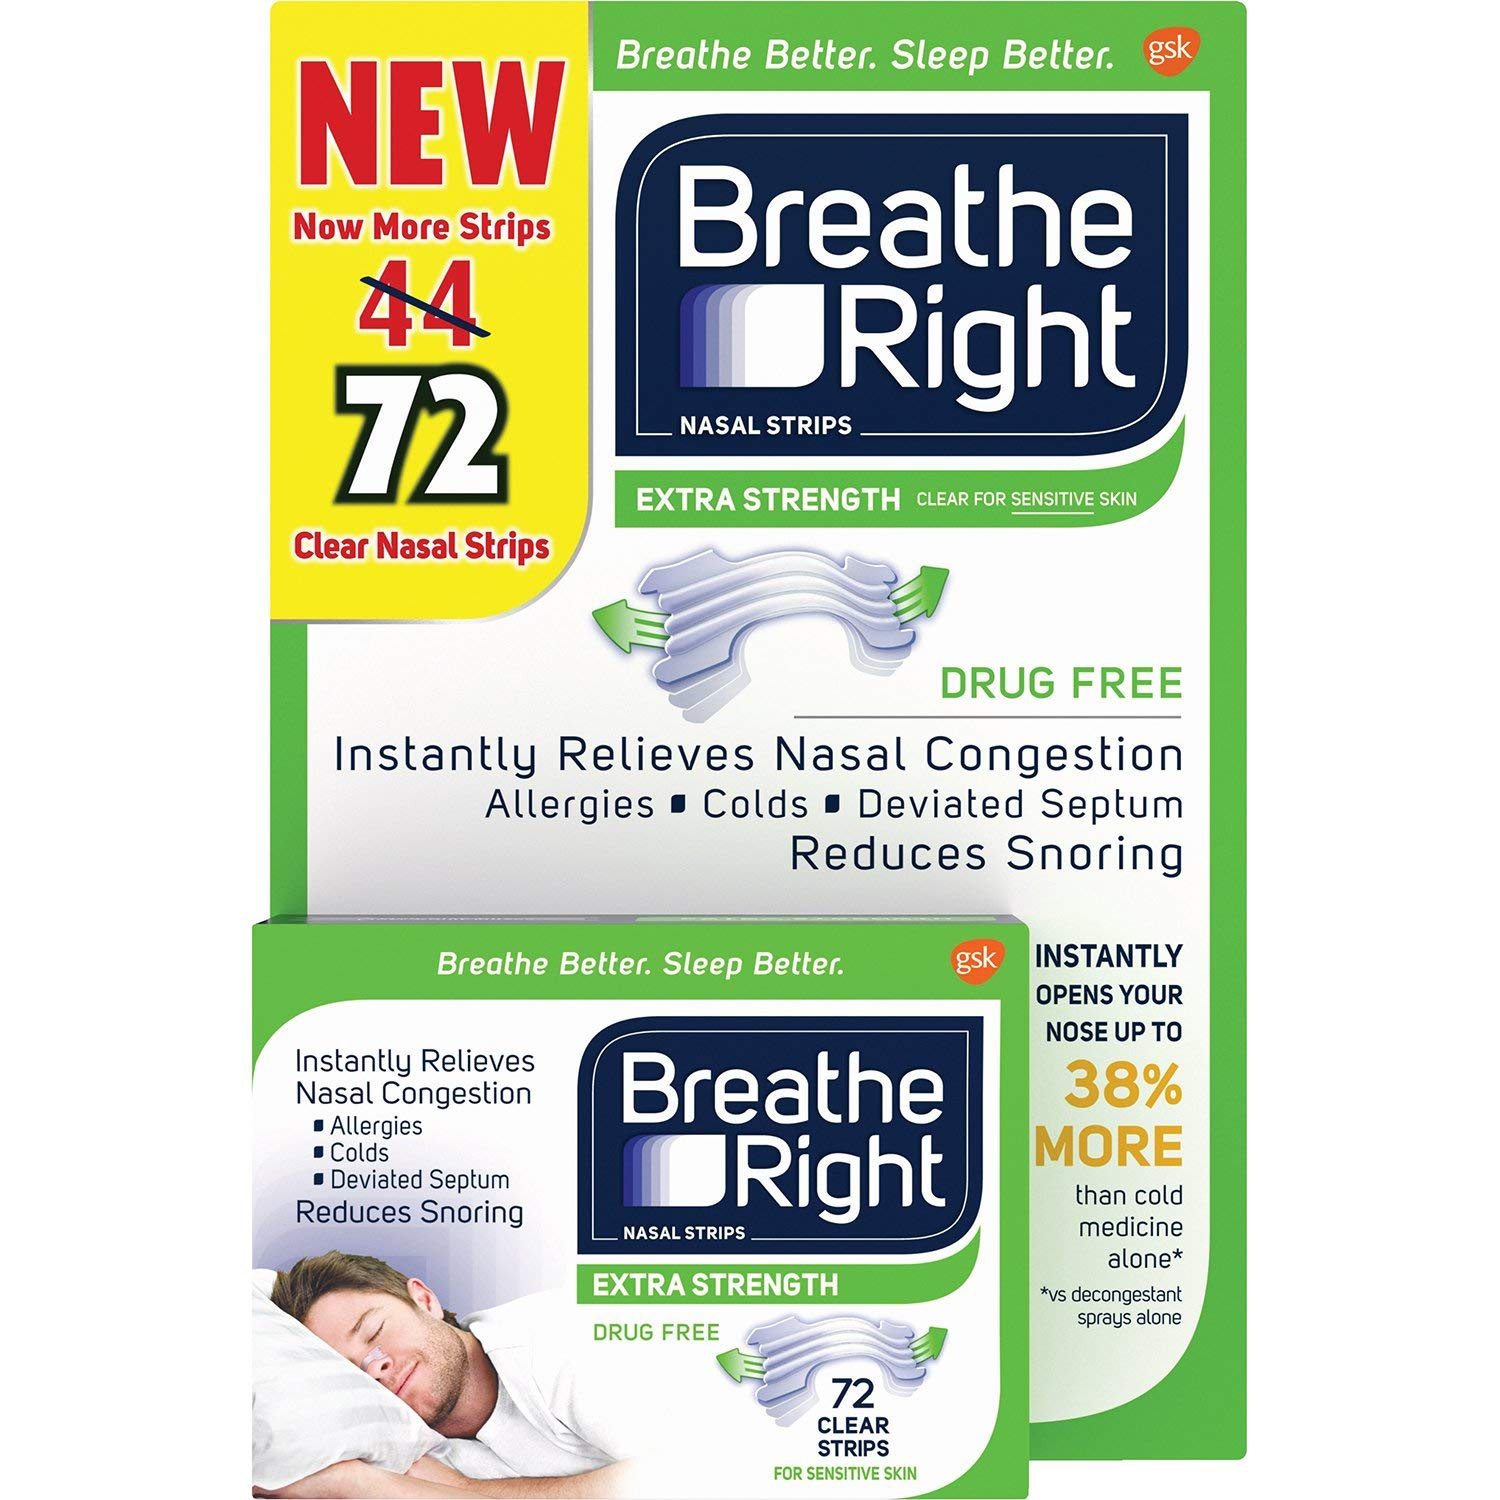 Breathe Right Nasal Strips, Extra Clear for Sensitive Skin, 72 Clear Strips by BREATHE